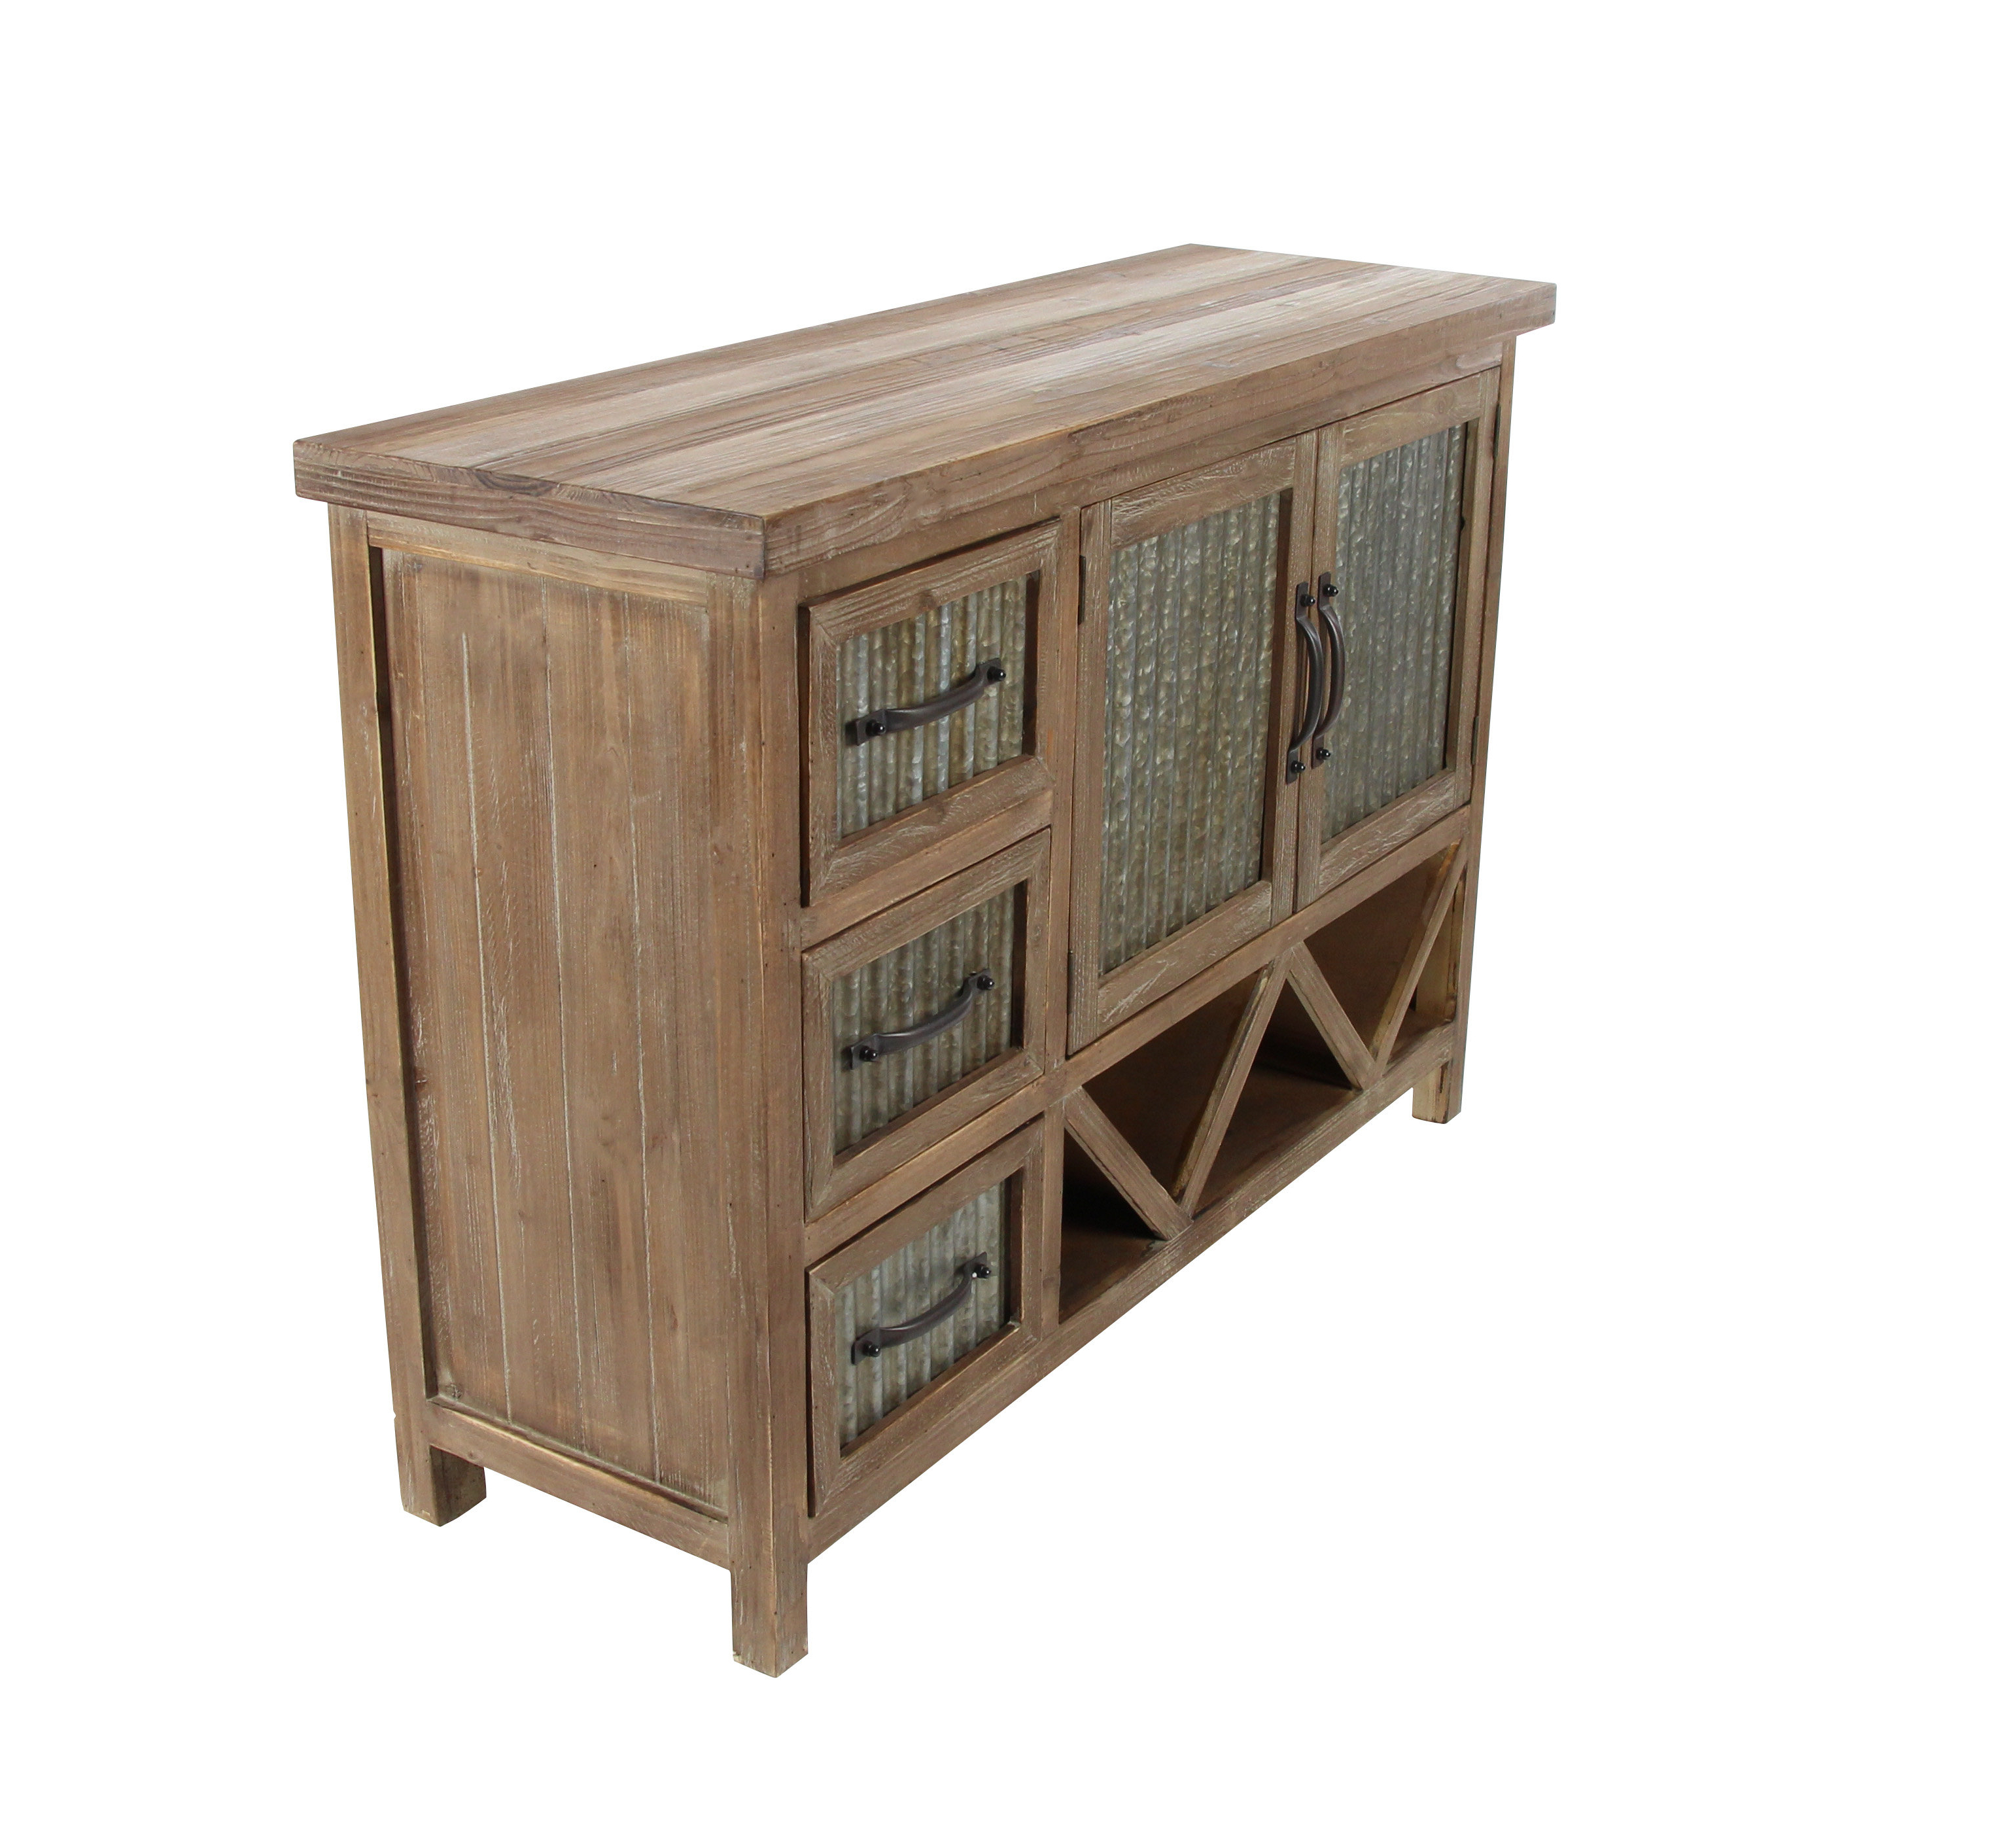 Wayfair Intended For Best And Newest Corrugated Natural 4 Drawer Sideboards (View 18 of 20)